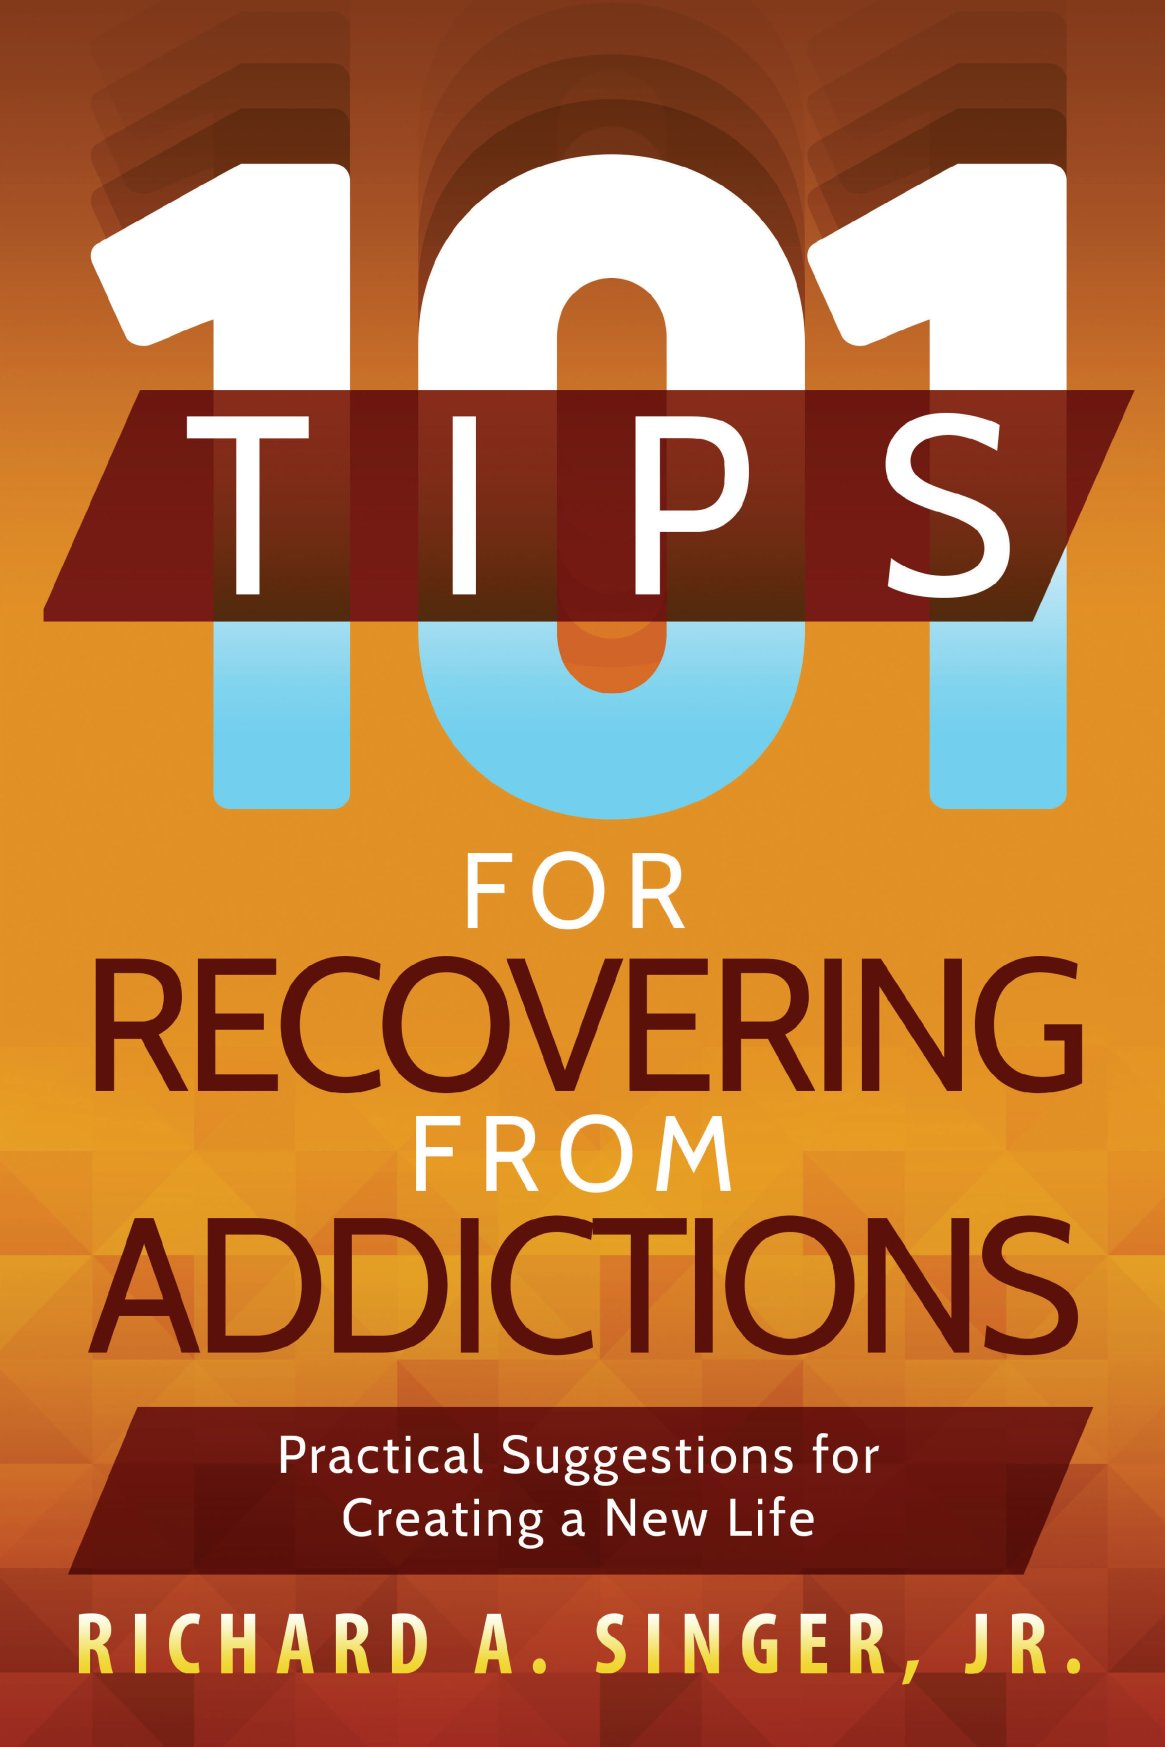 101 Tips for Recovering from Addictions 978-1-61599-328-4